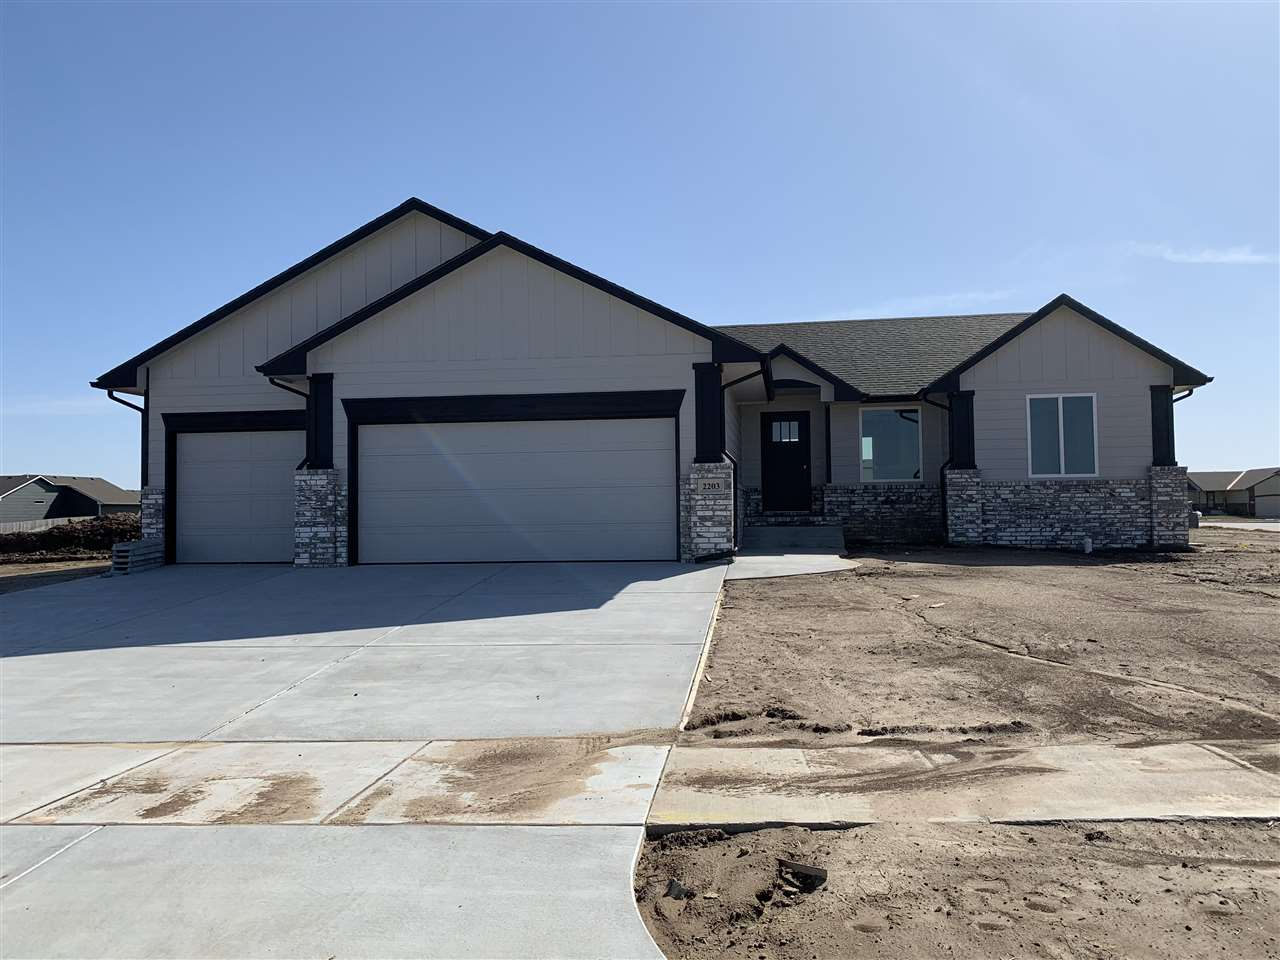 NEW COMFORT HOMES MODEL (NOT FOR SALE)! Located in Prairie Creek's newest, 5th Addition on the north